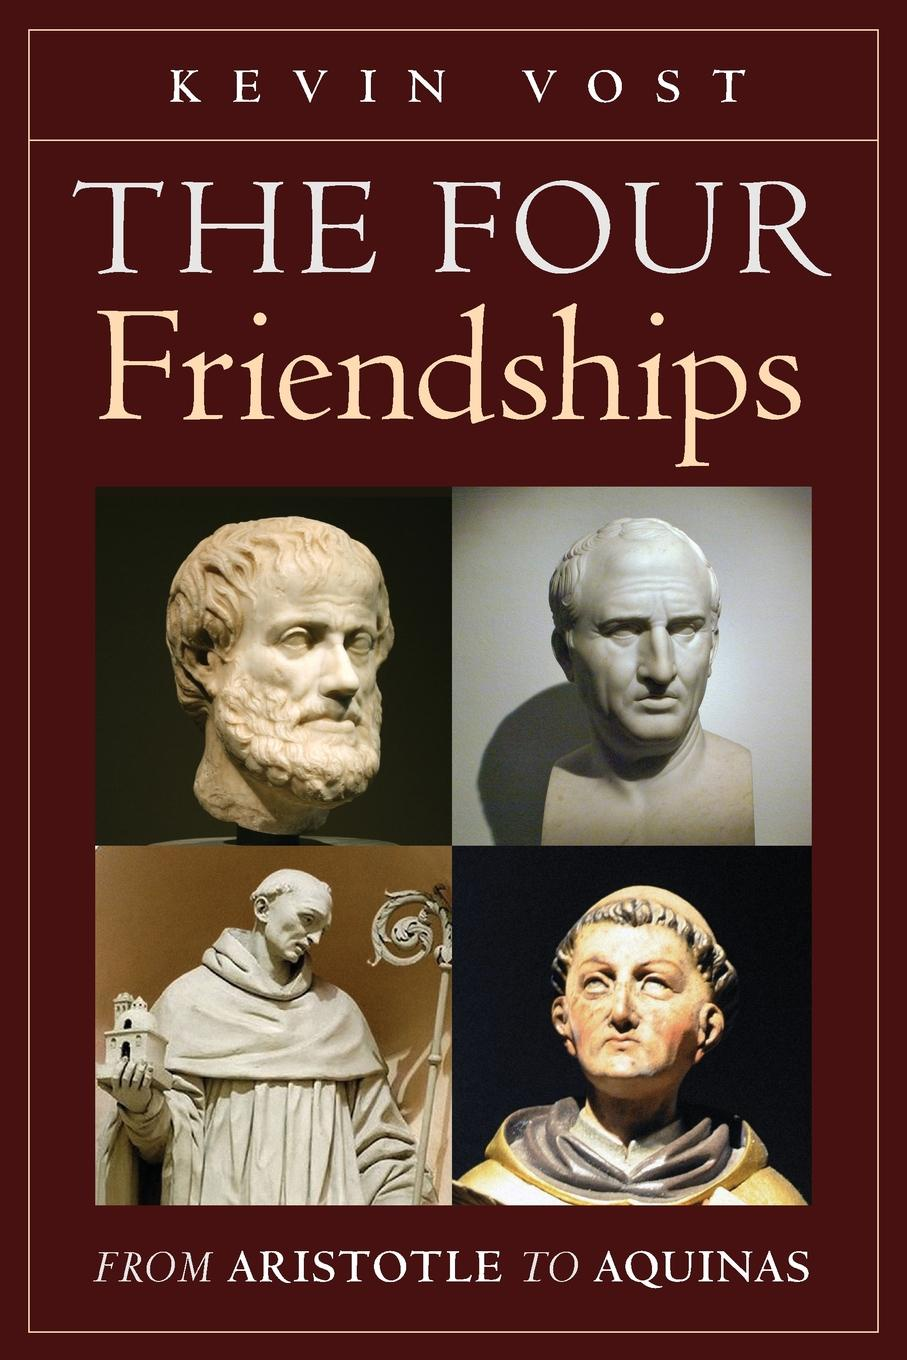 Kevin Vost The Four Friendships. From Aristotle to Aquinas